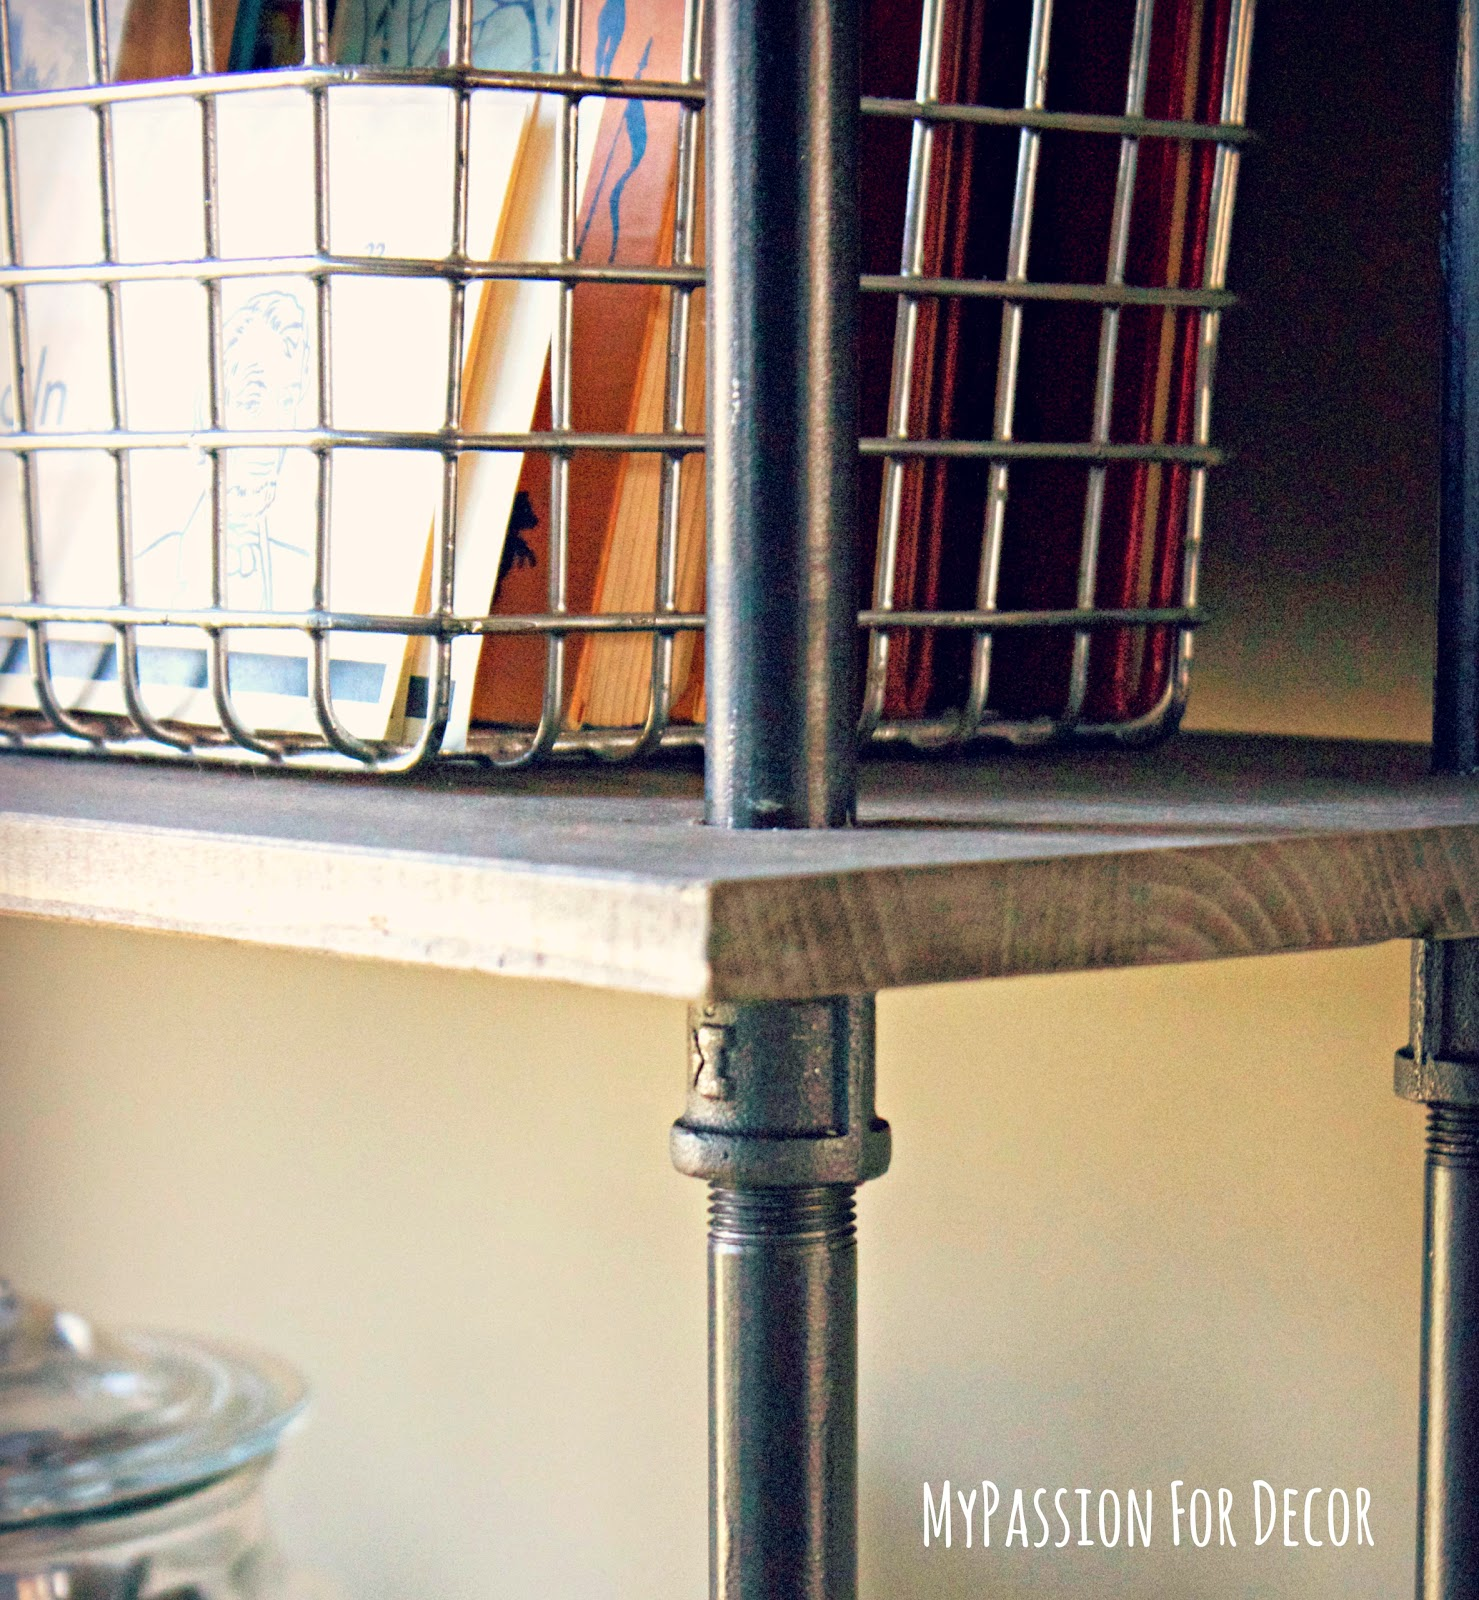 Diy Industrial Decor: My Passion For Decor: DIY Industrial Pipe And Wood Shelving